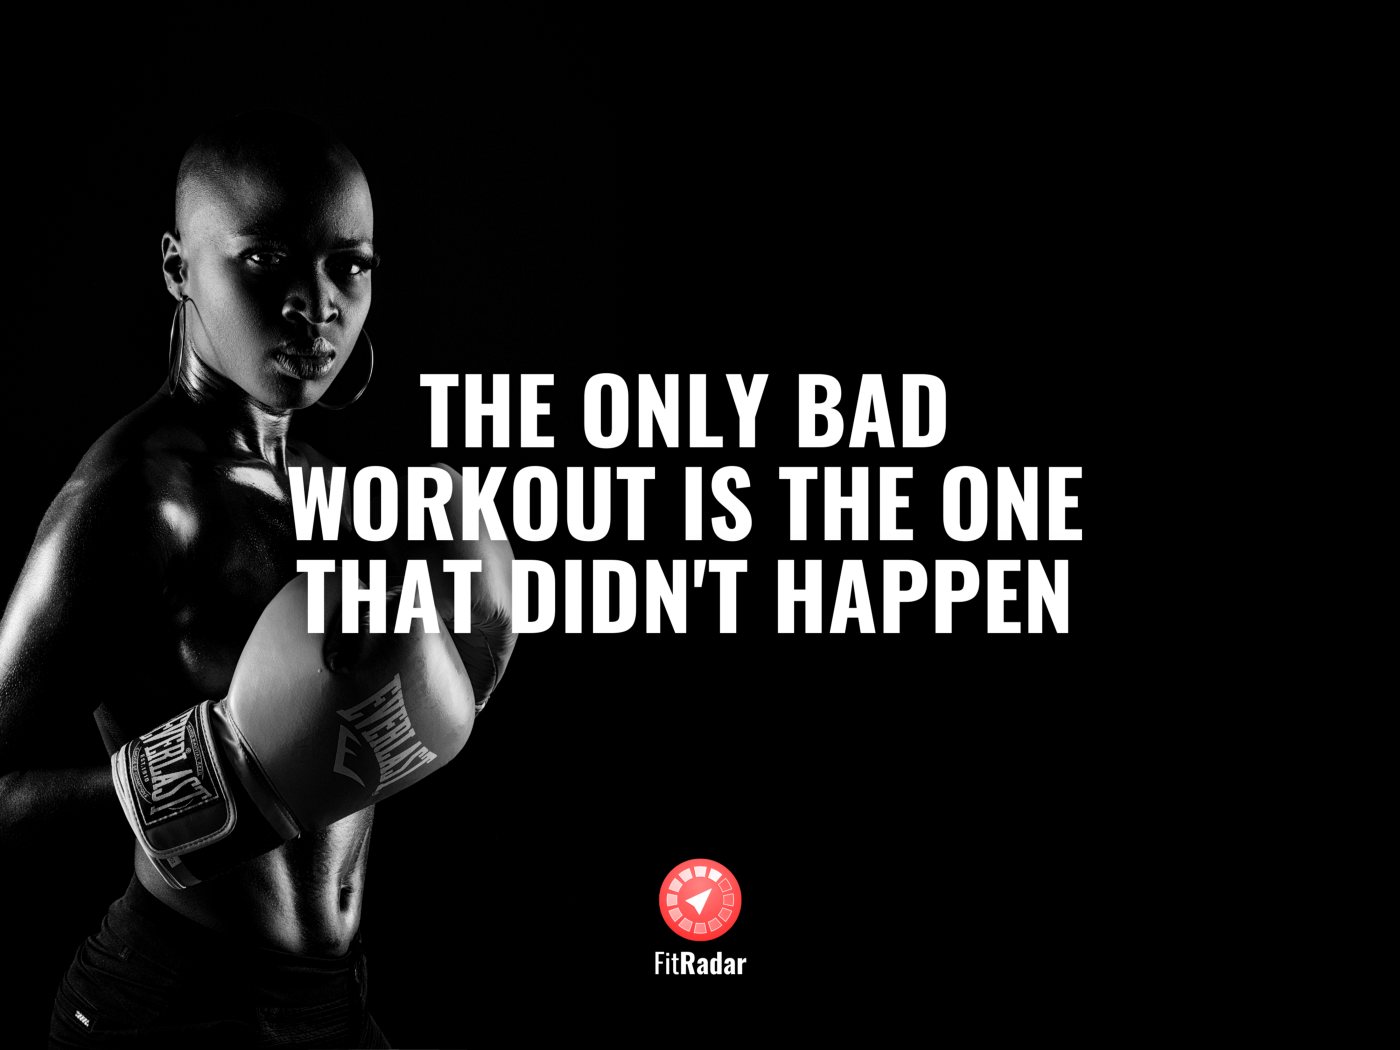 fitness personal trainer motivation workout venture capital startup gym